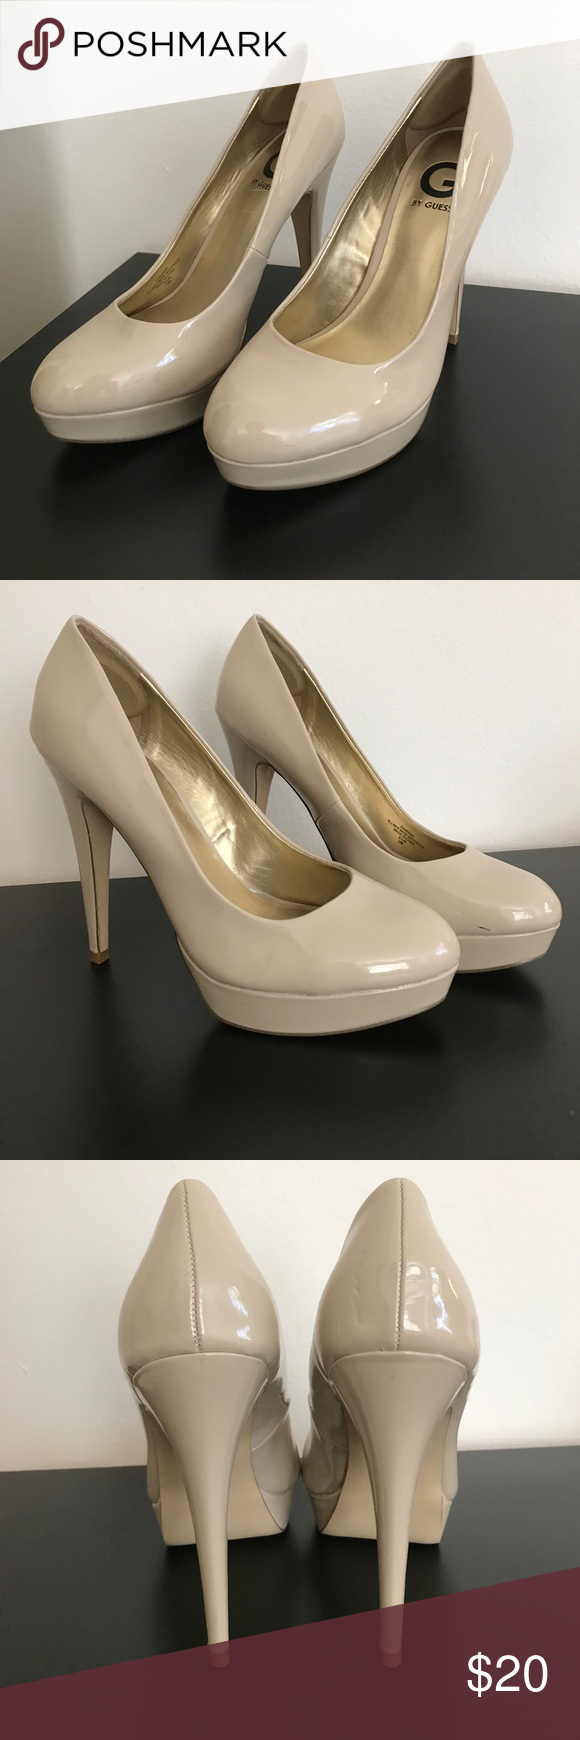 6ac273907c1 G by Guess Nude Platform Heels Hardly worn! G by Guess Shoes Heels